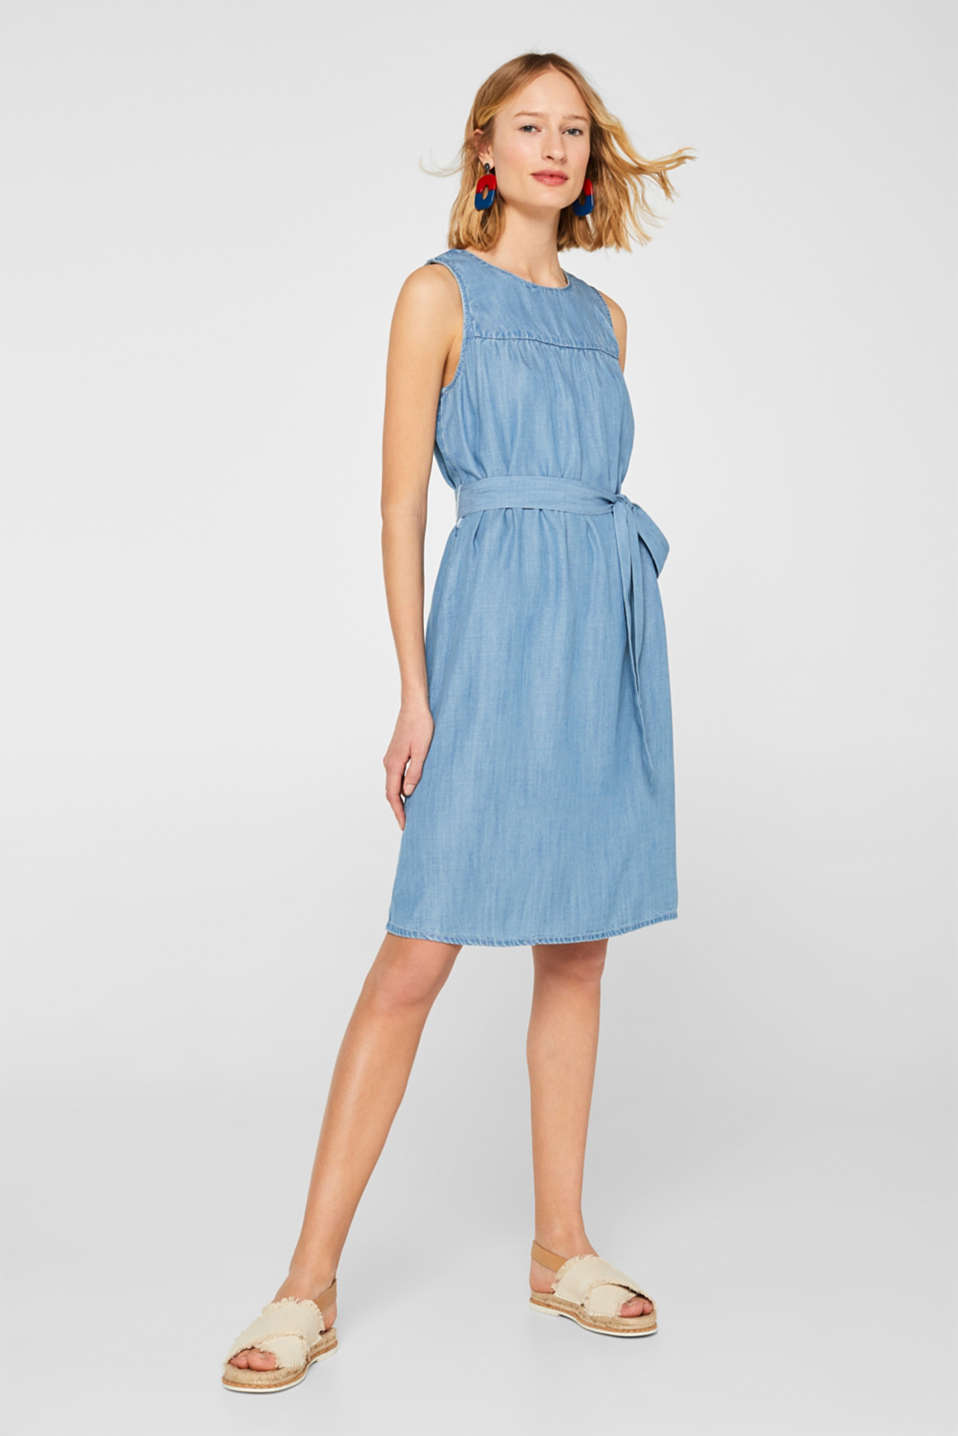 A-line dress in 100% lyocell with a tie-around belt, BLUE LIGHT WASH, detail image number 1